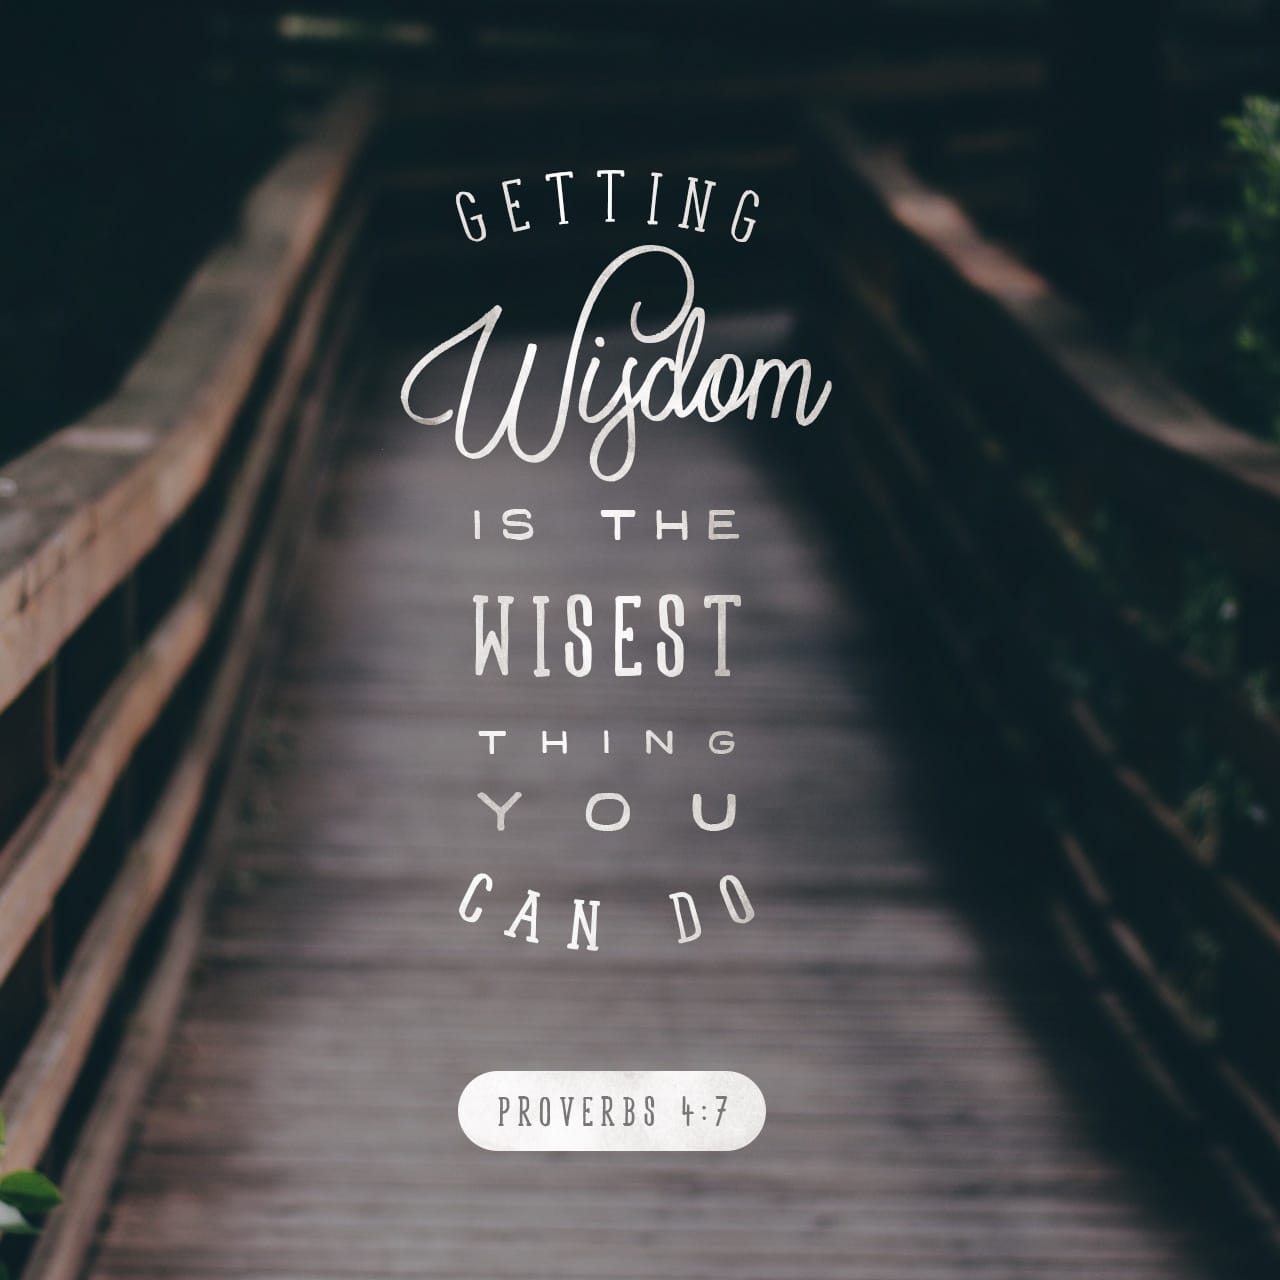 Proverbs 4:7 The beginning of wisdom is this: Get wisdom. Though it cost all you have, get understanding. | New International Version (NIV)